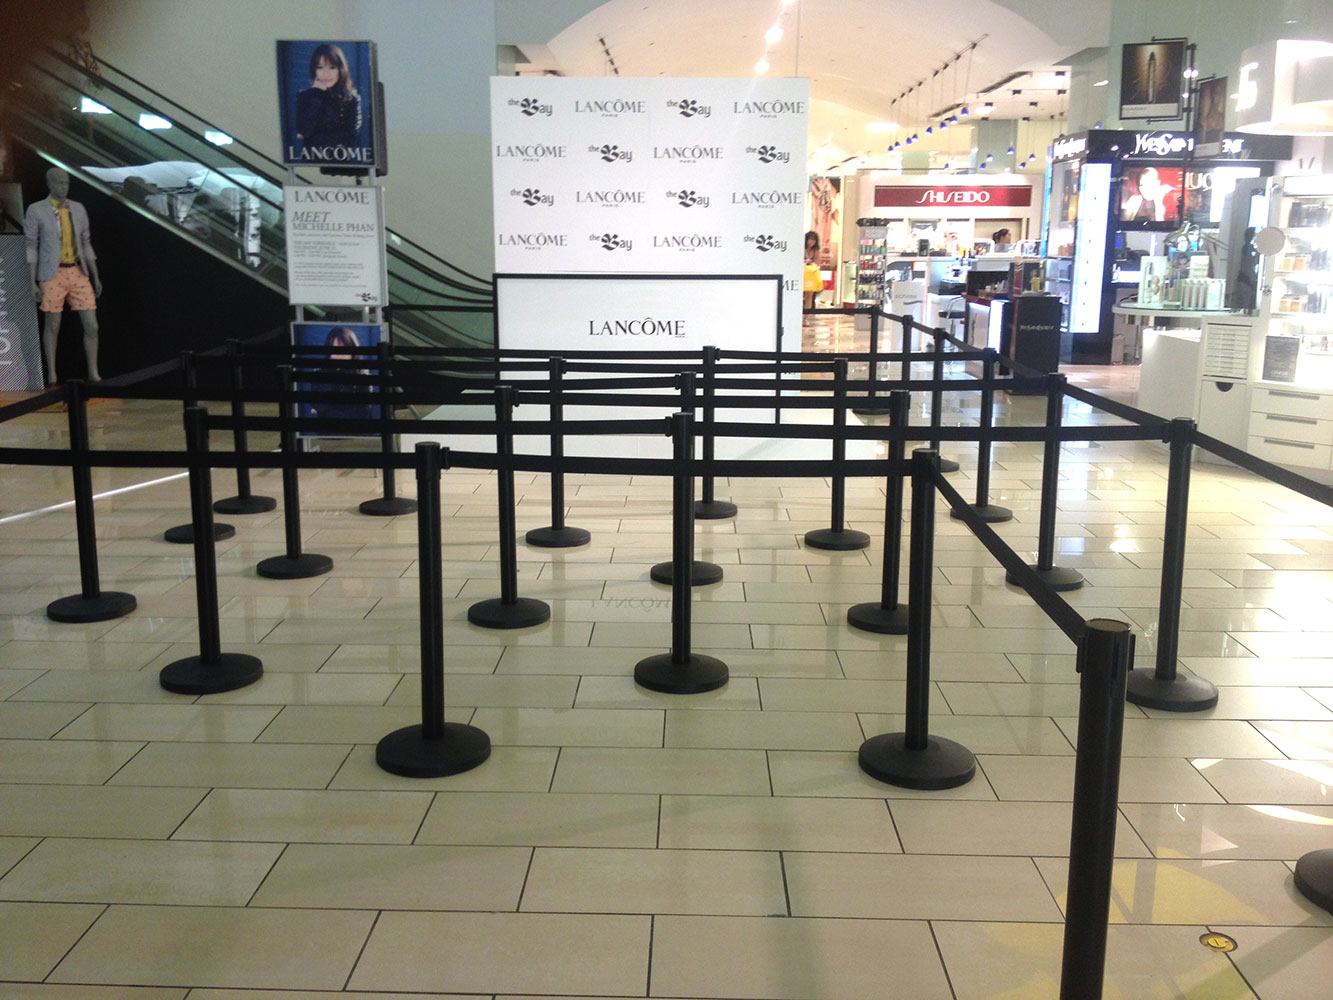 Black stanchions with black retractable belt